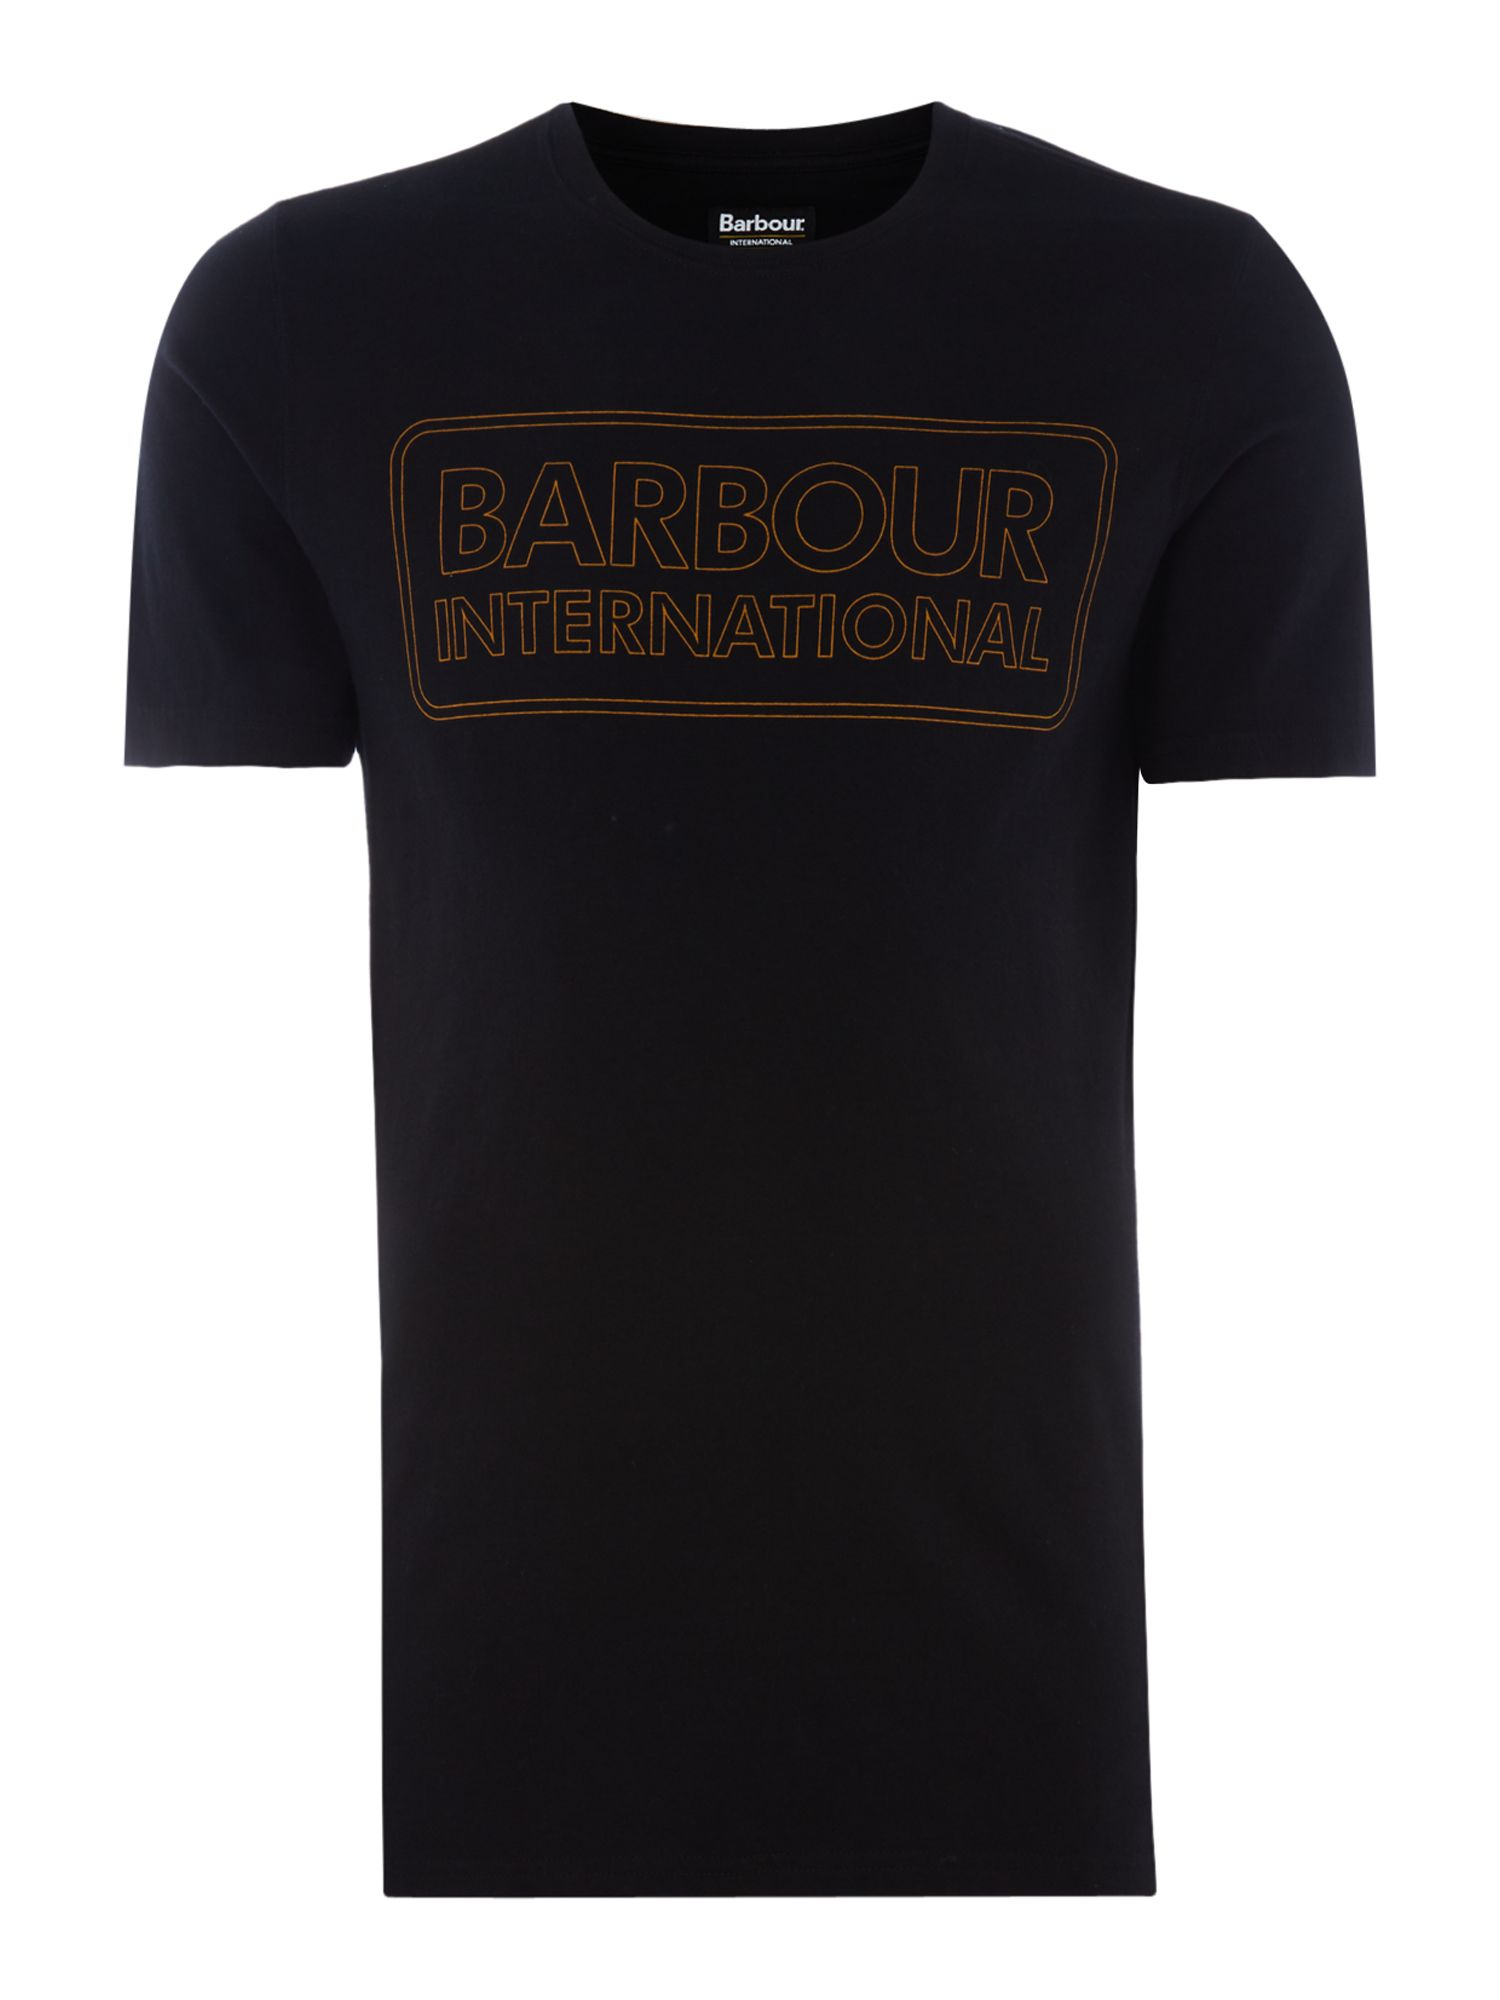 Men's Barbour Duke race short sleeve tshirt, Black